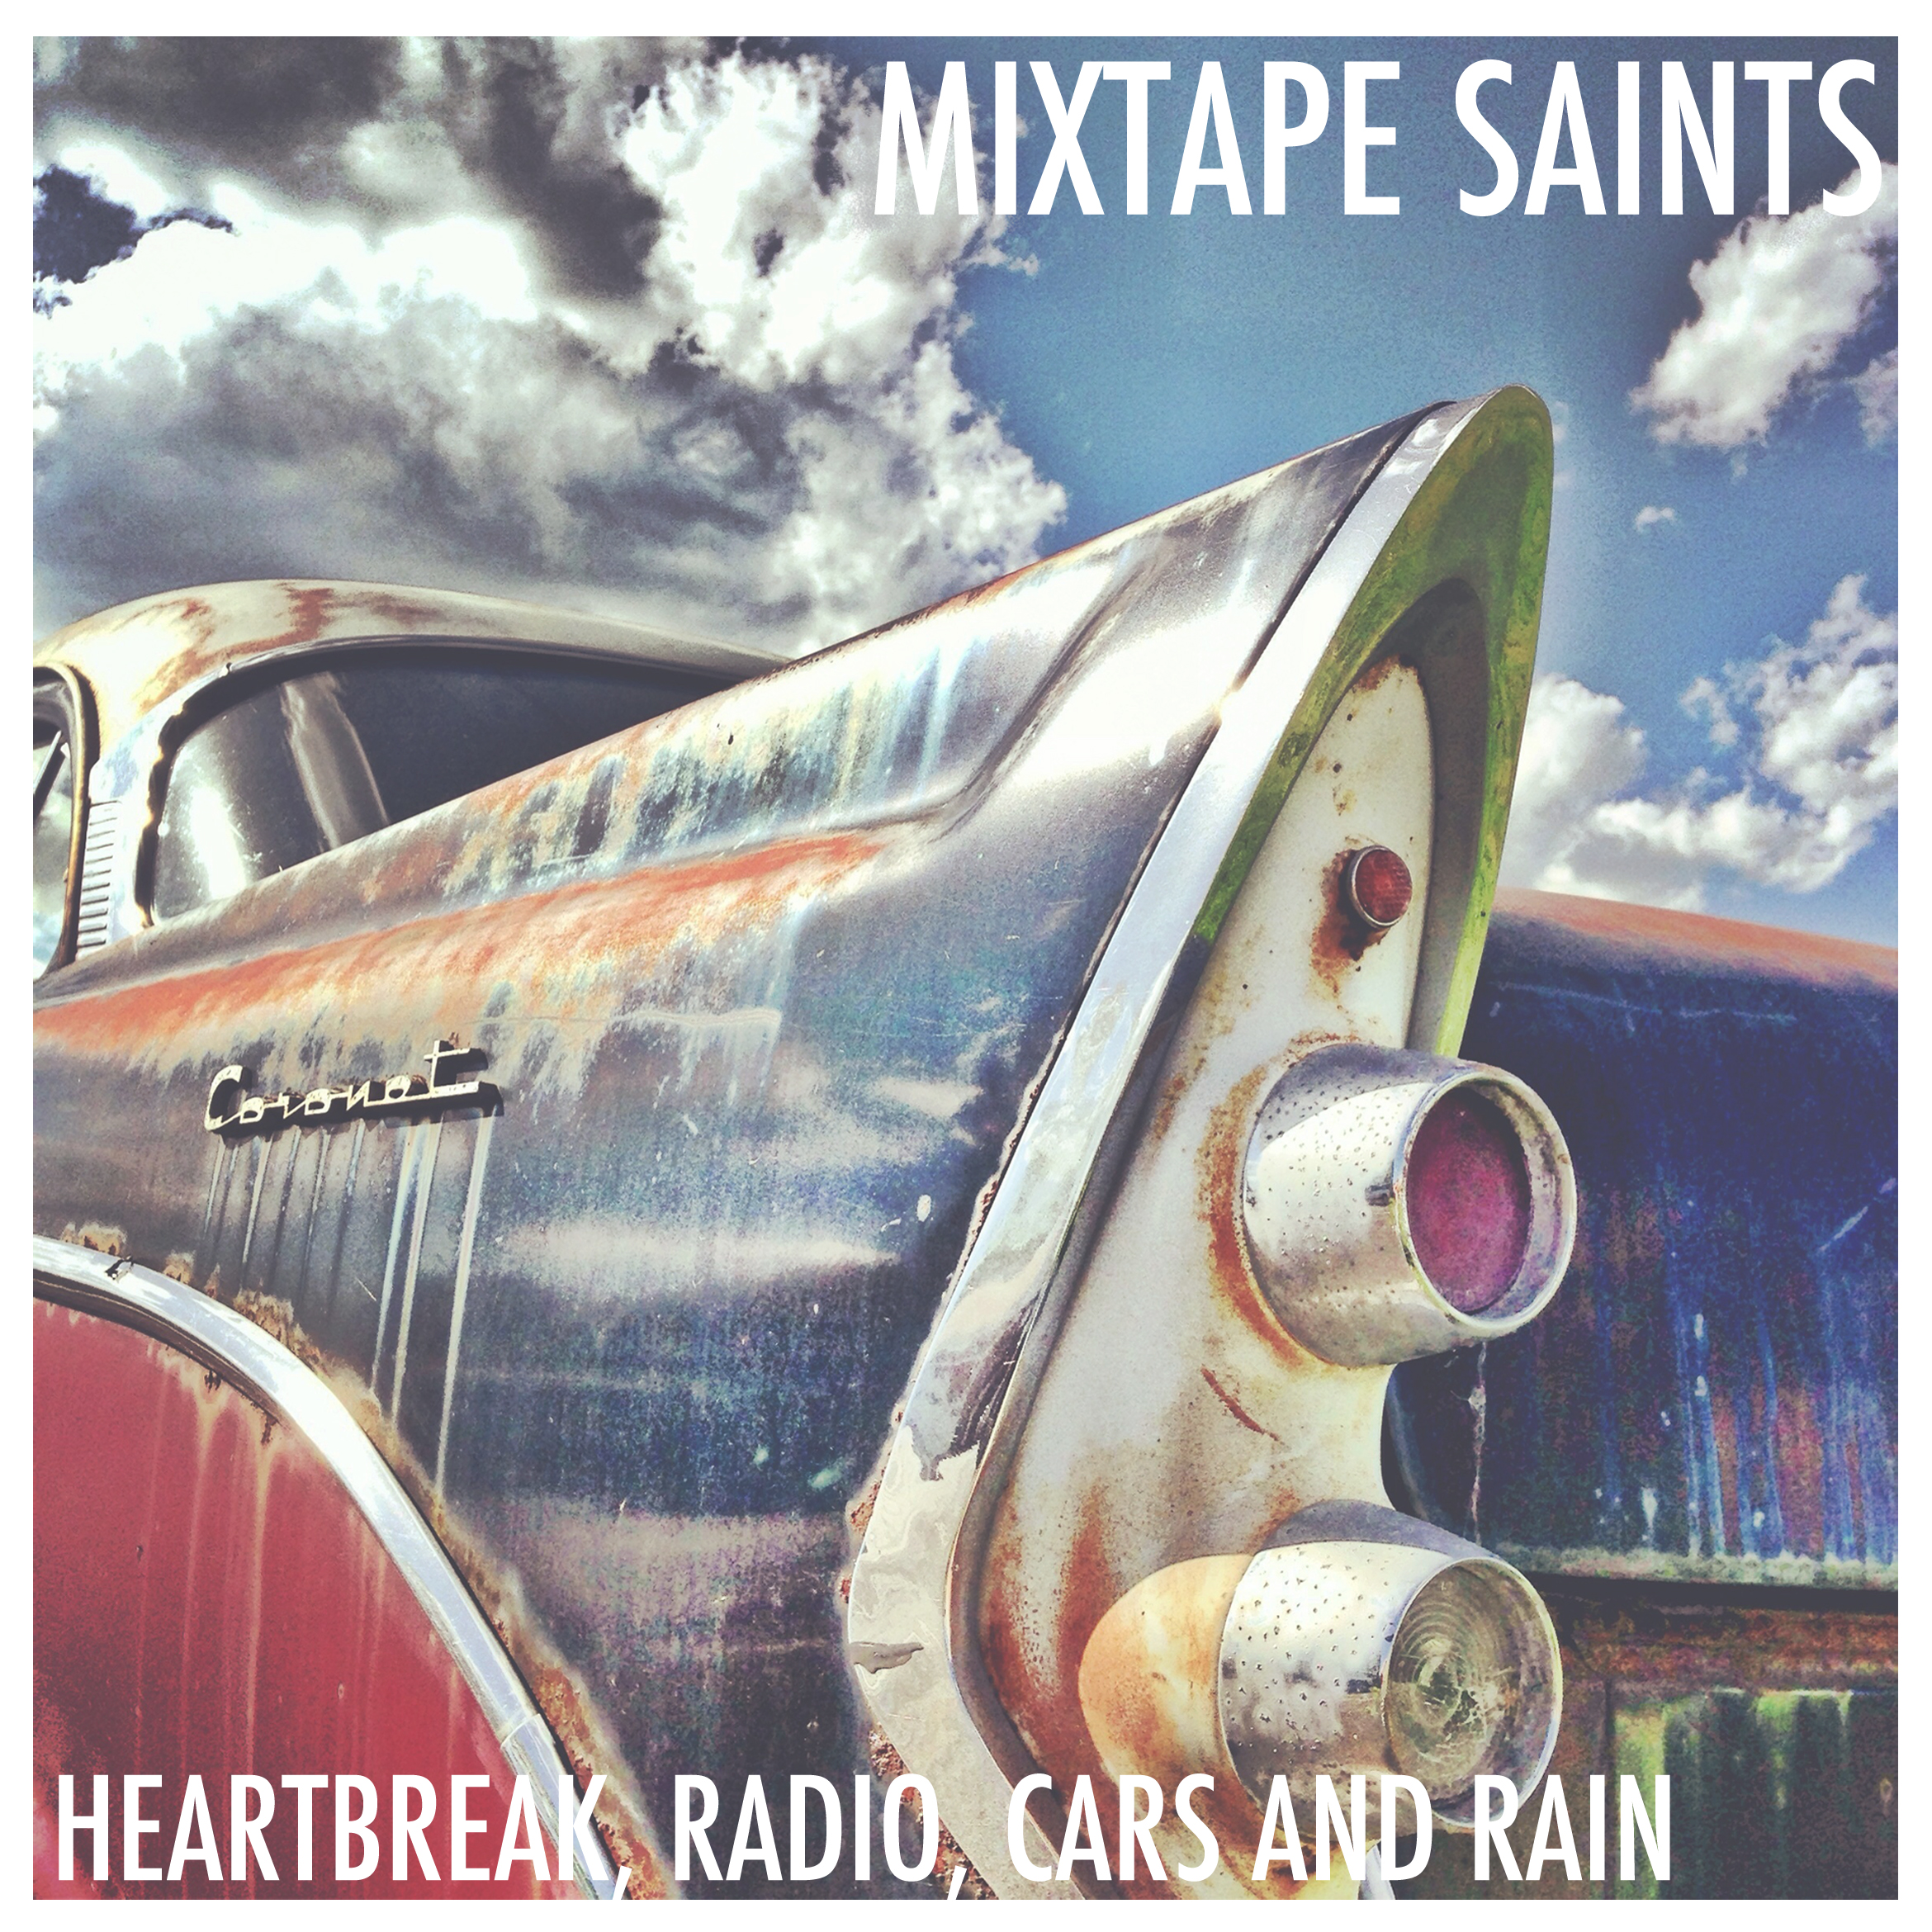 Mixtape Saints